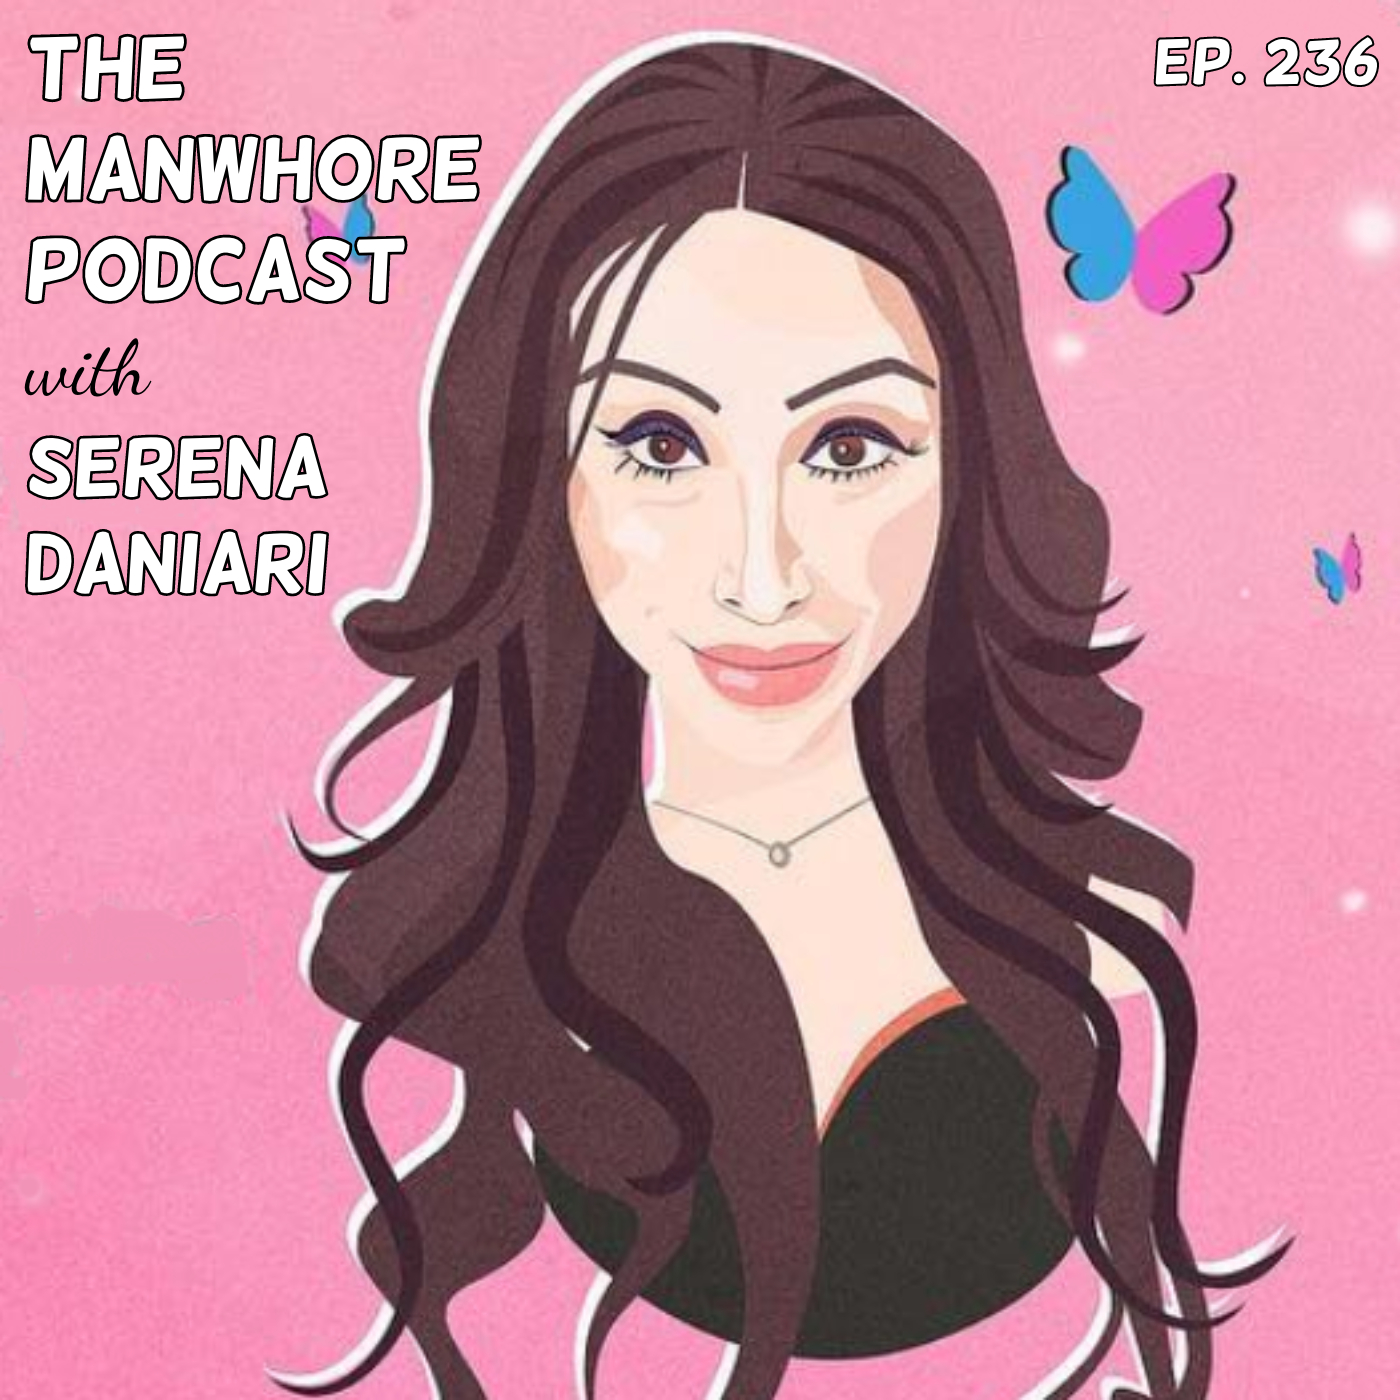 The Manwhore Podcast: A Sex-Positive Quest - Ep. 236: Dating Trans and Billy's Queer Experiences